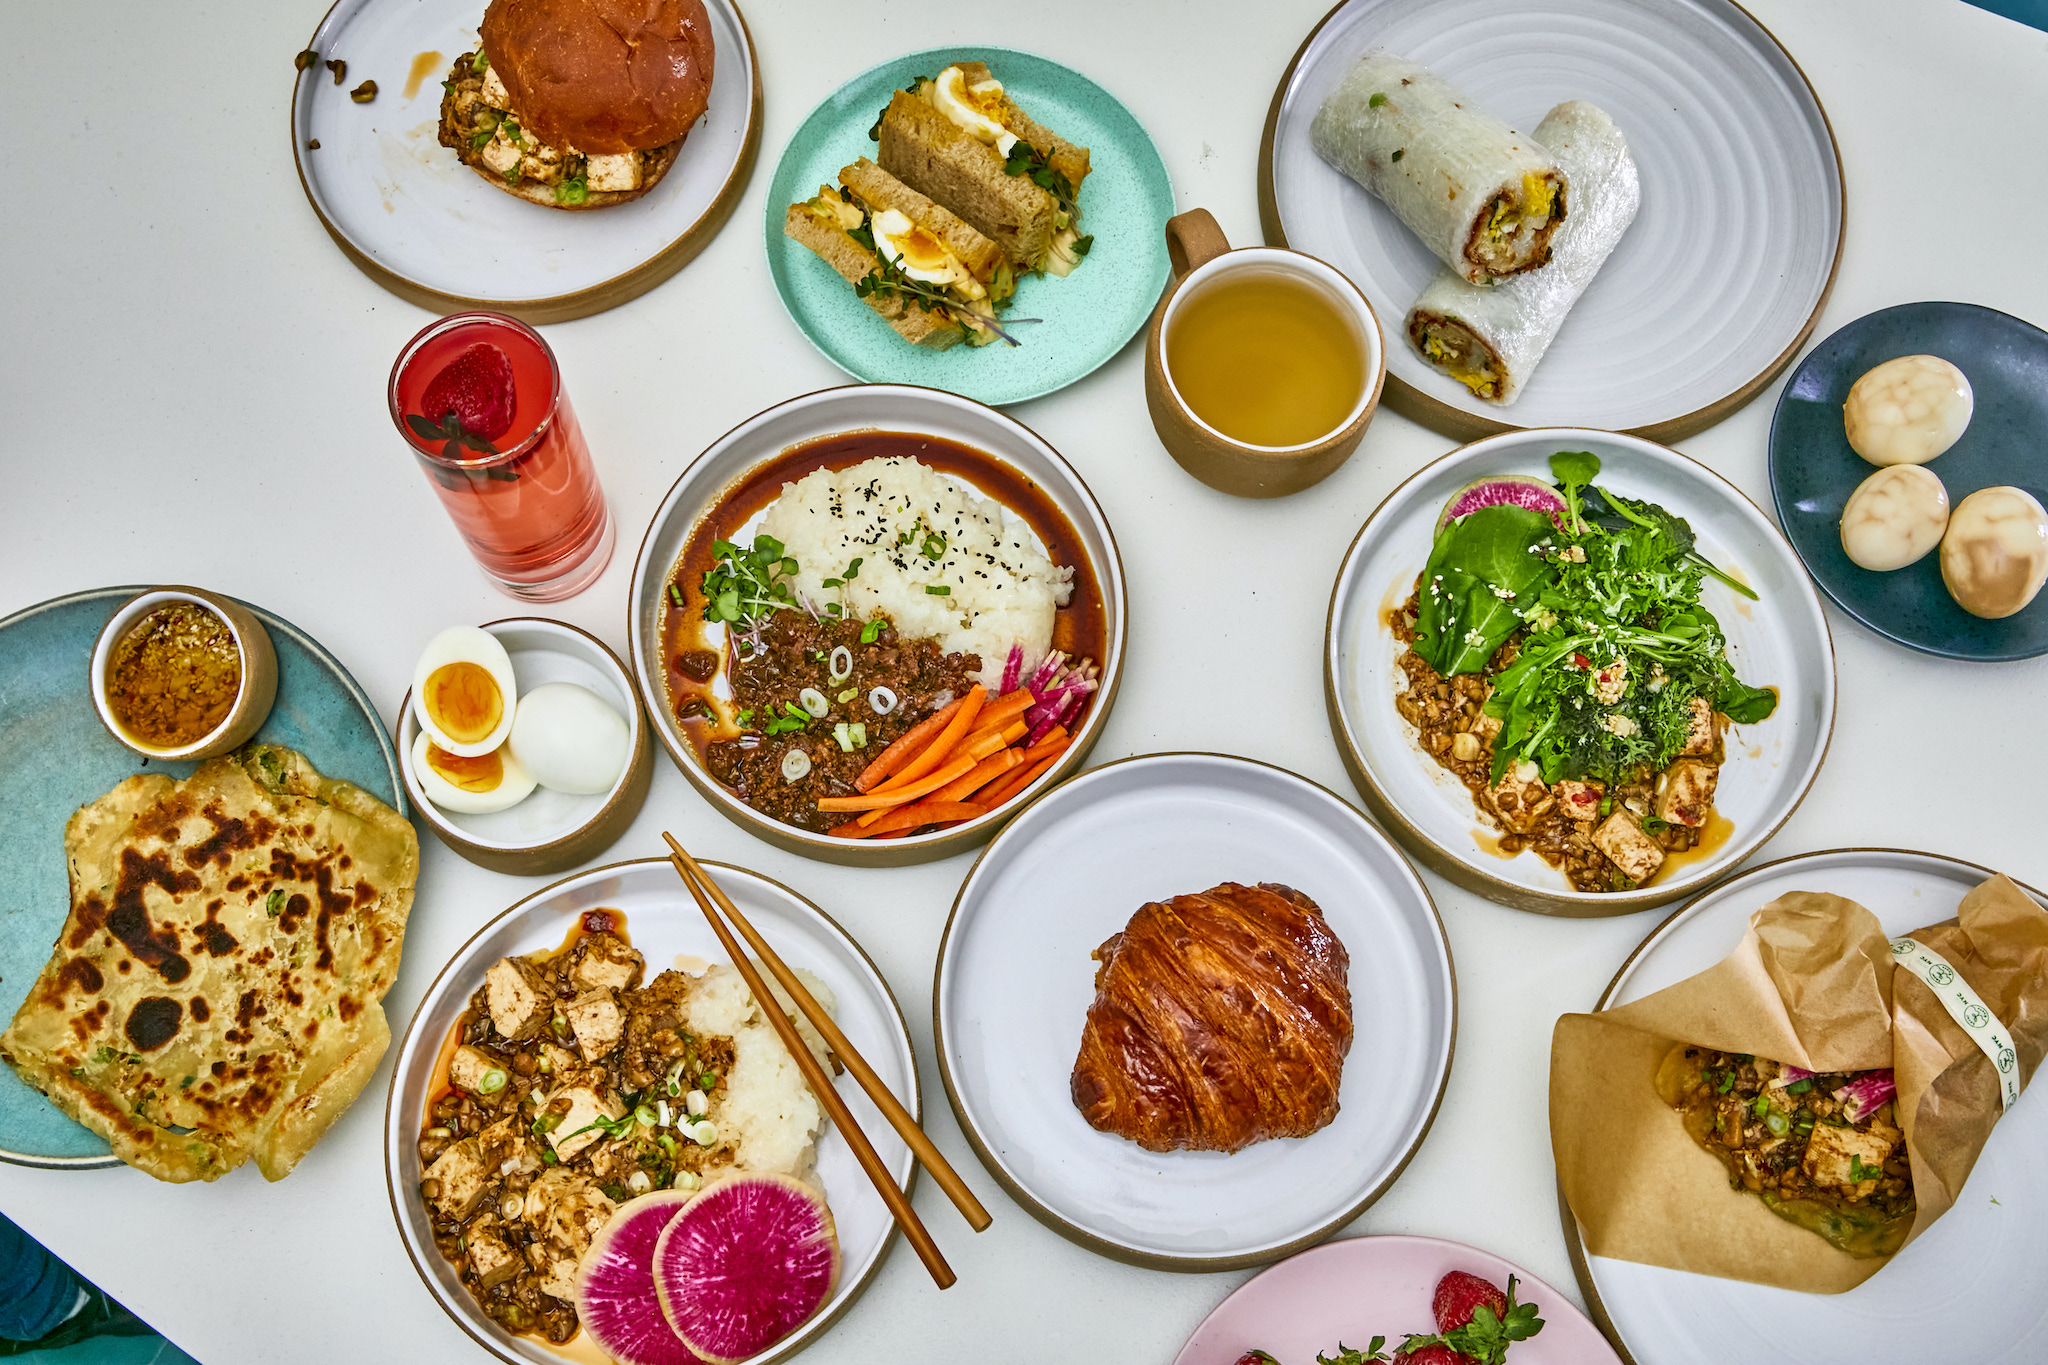 a spread of dishes from Local Roots cafe